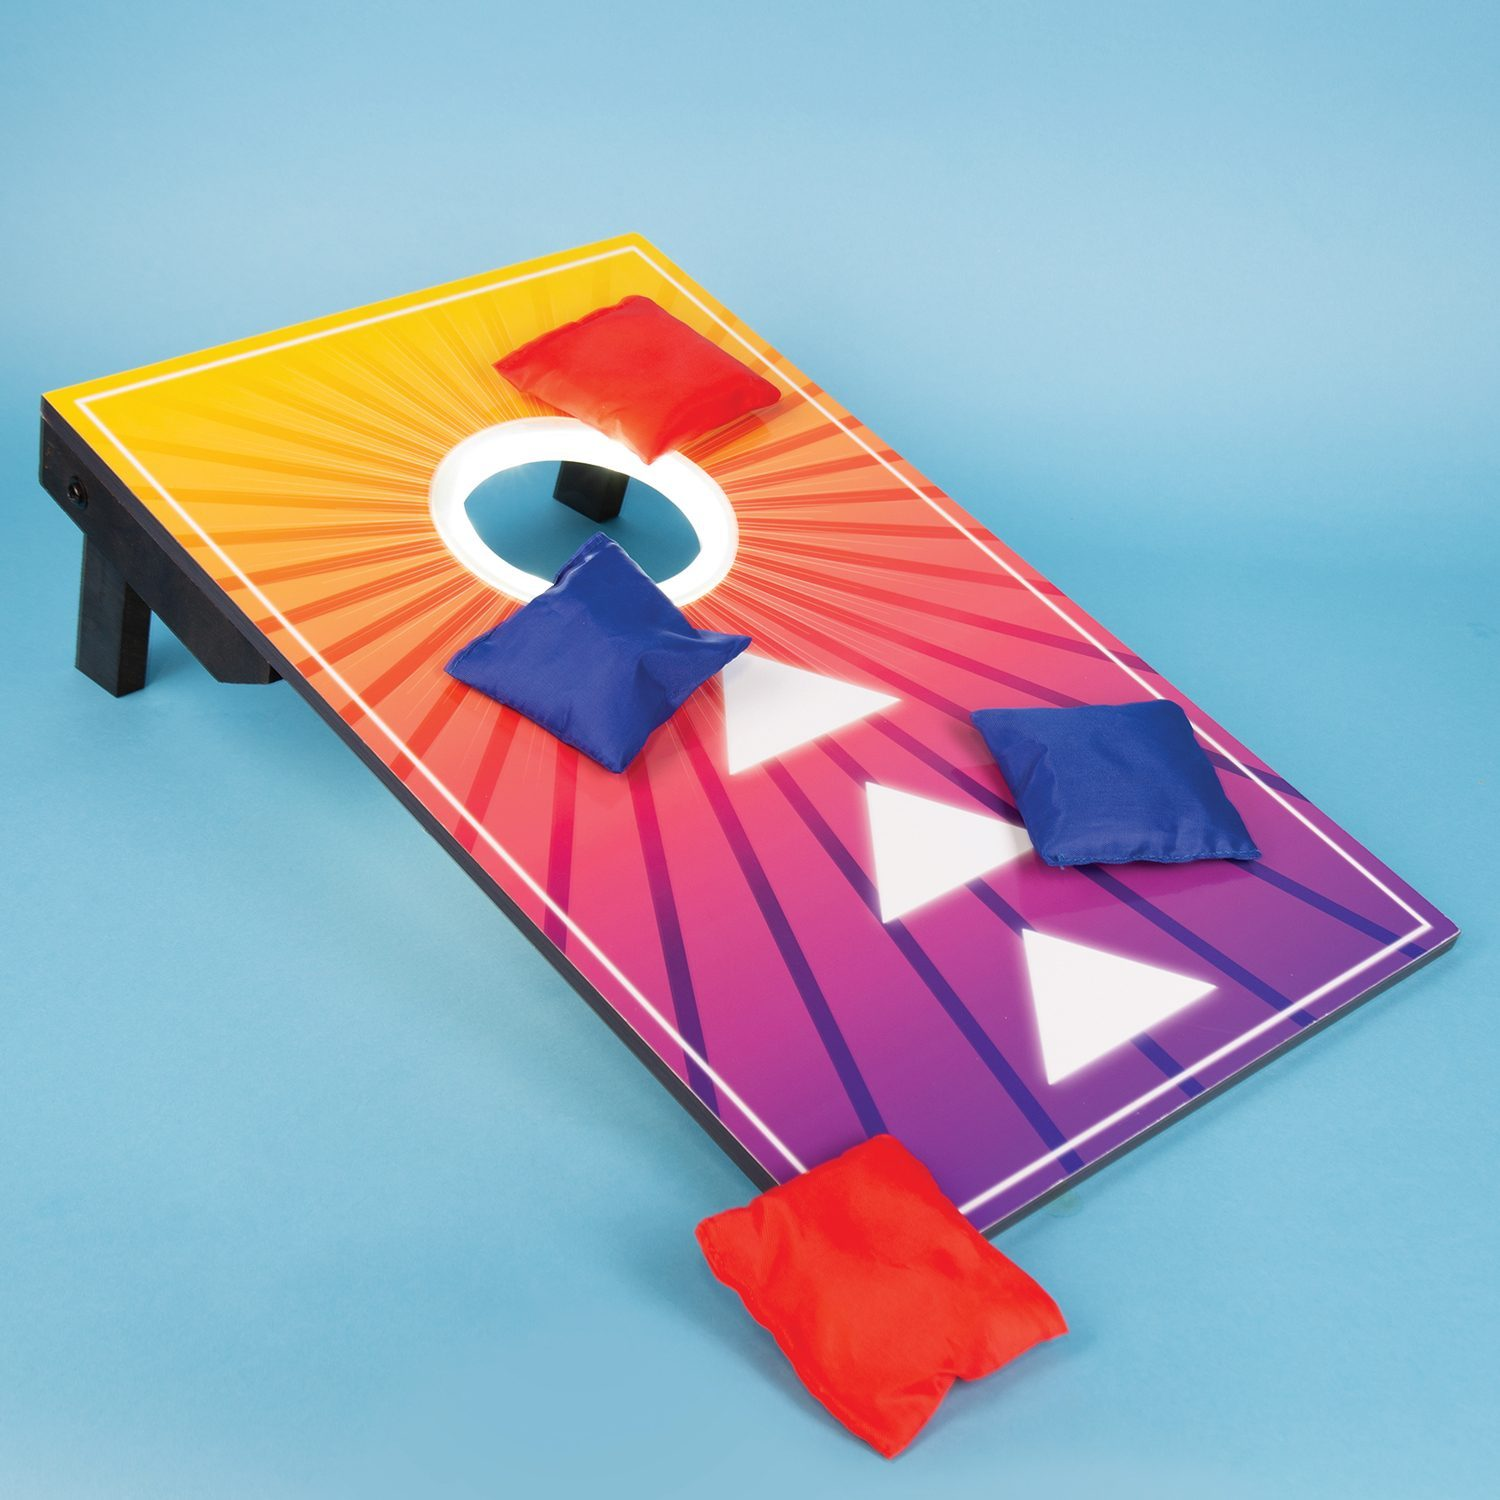 Light Up Bean Bag Toss Spel